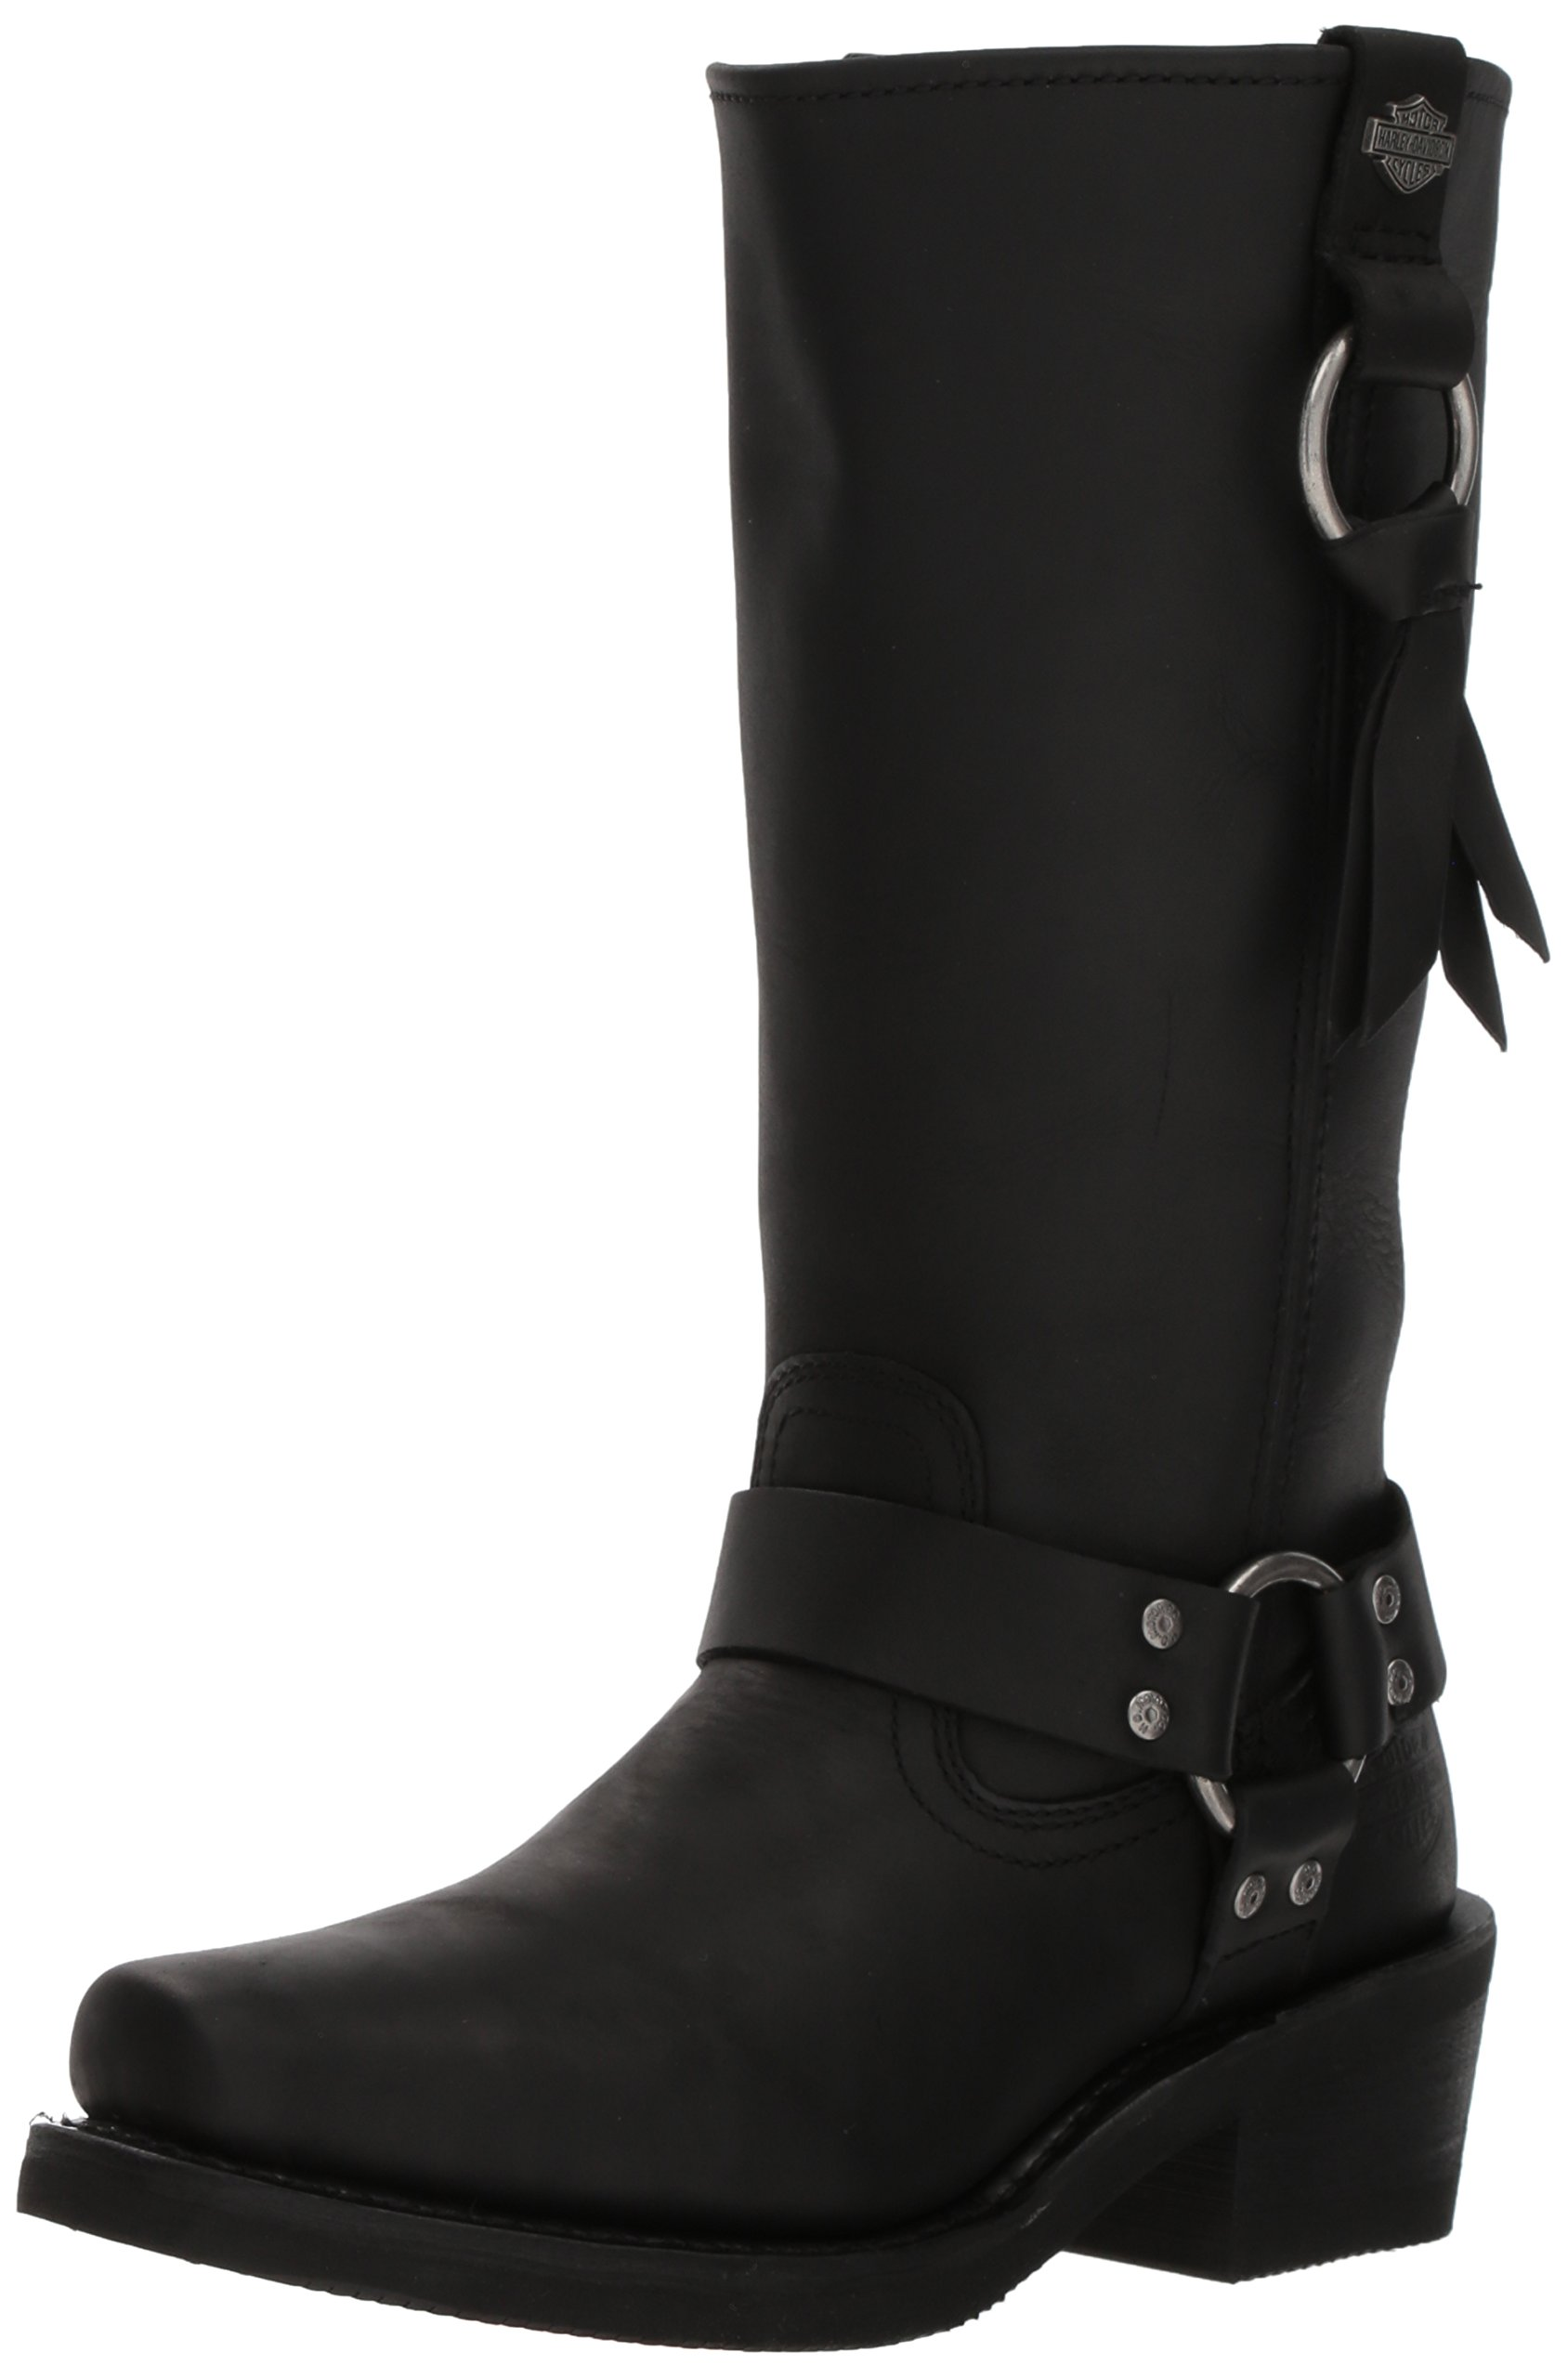 Harley-Davidson Women's Fenmore Motorcycle Boot, Black, 5 Medium US